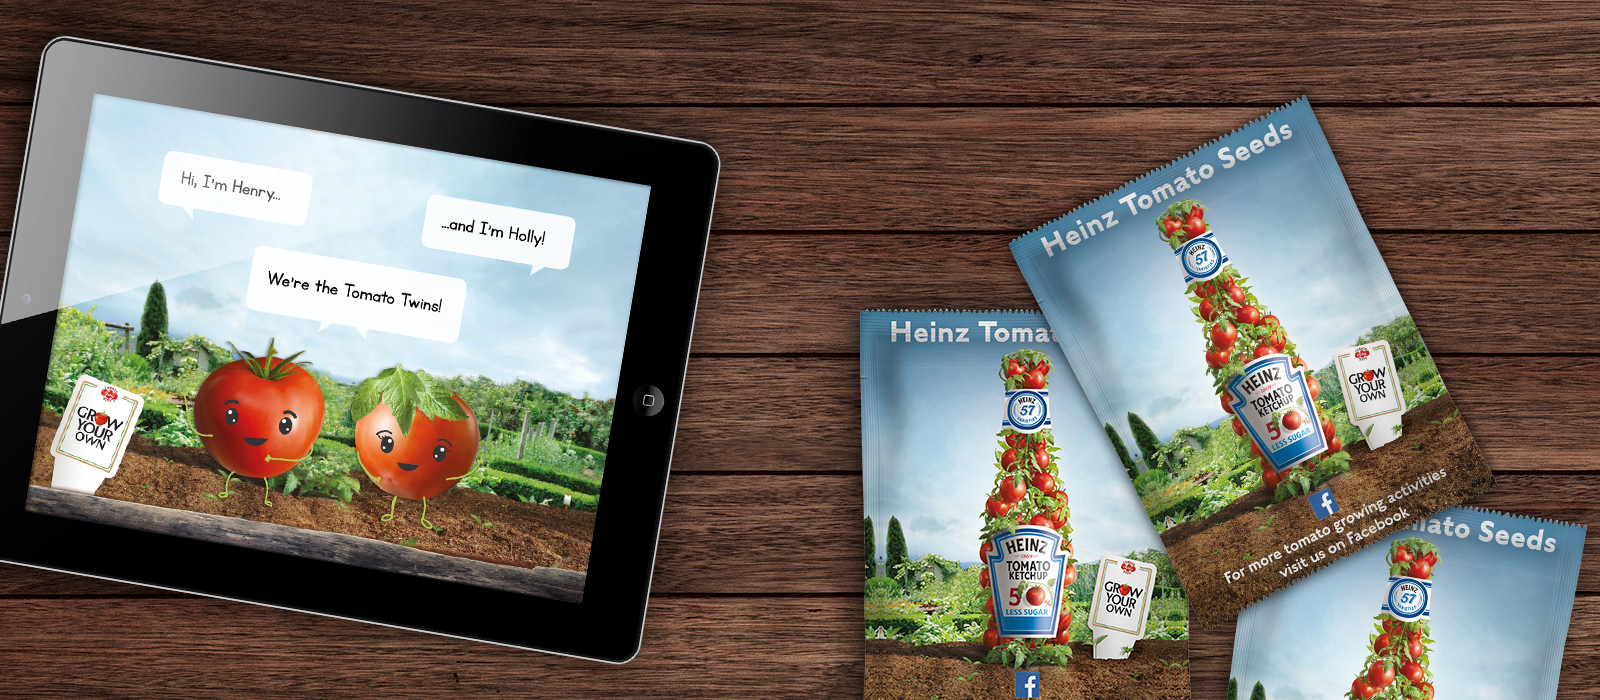 Tablet and seed packs for Heinz